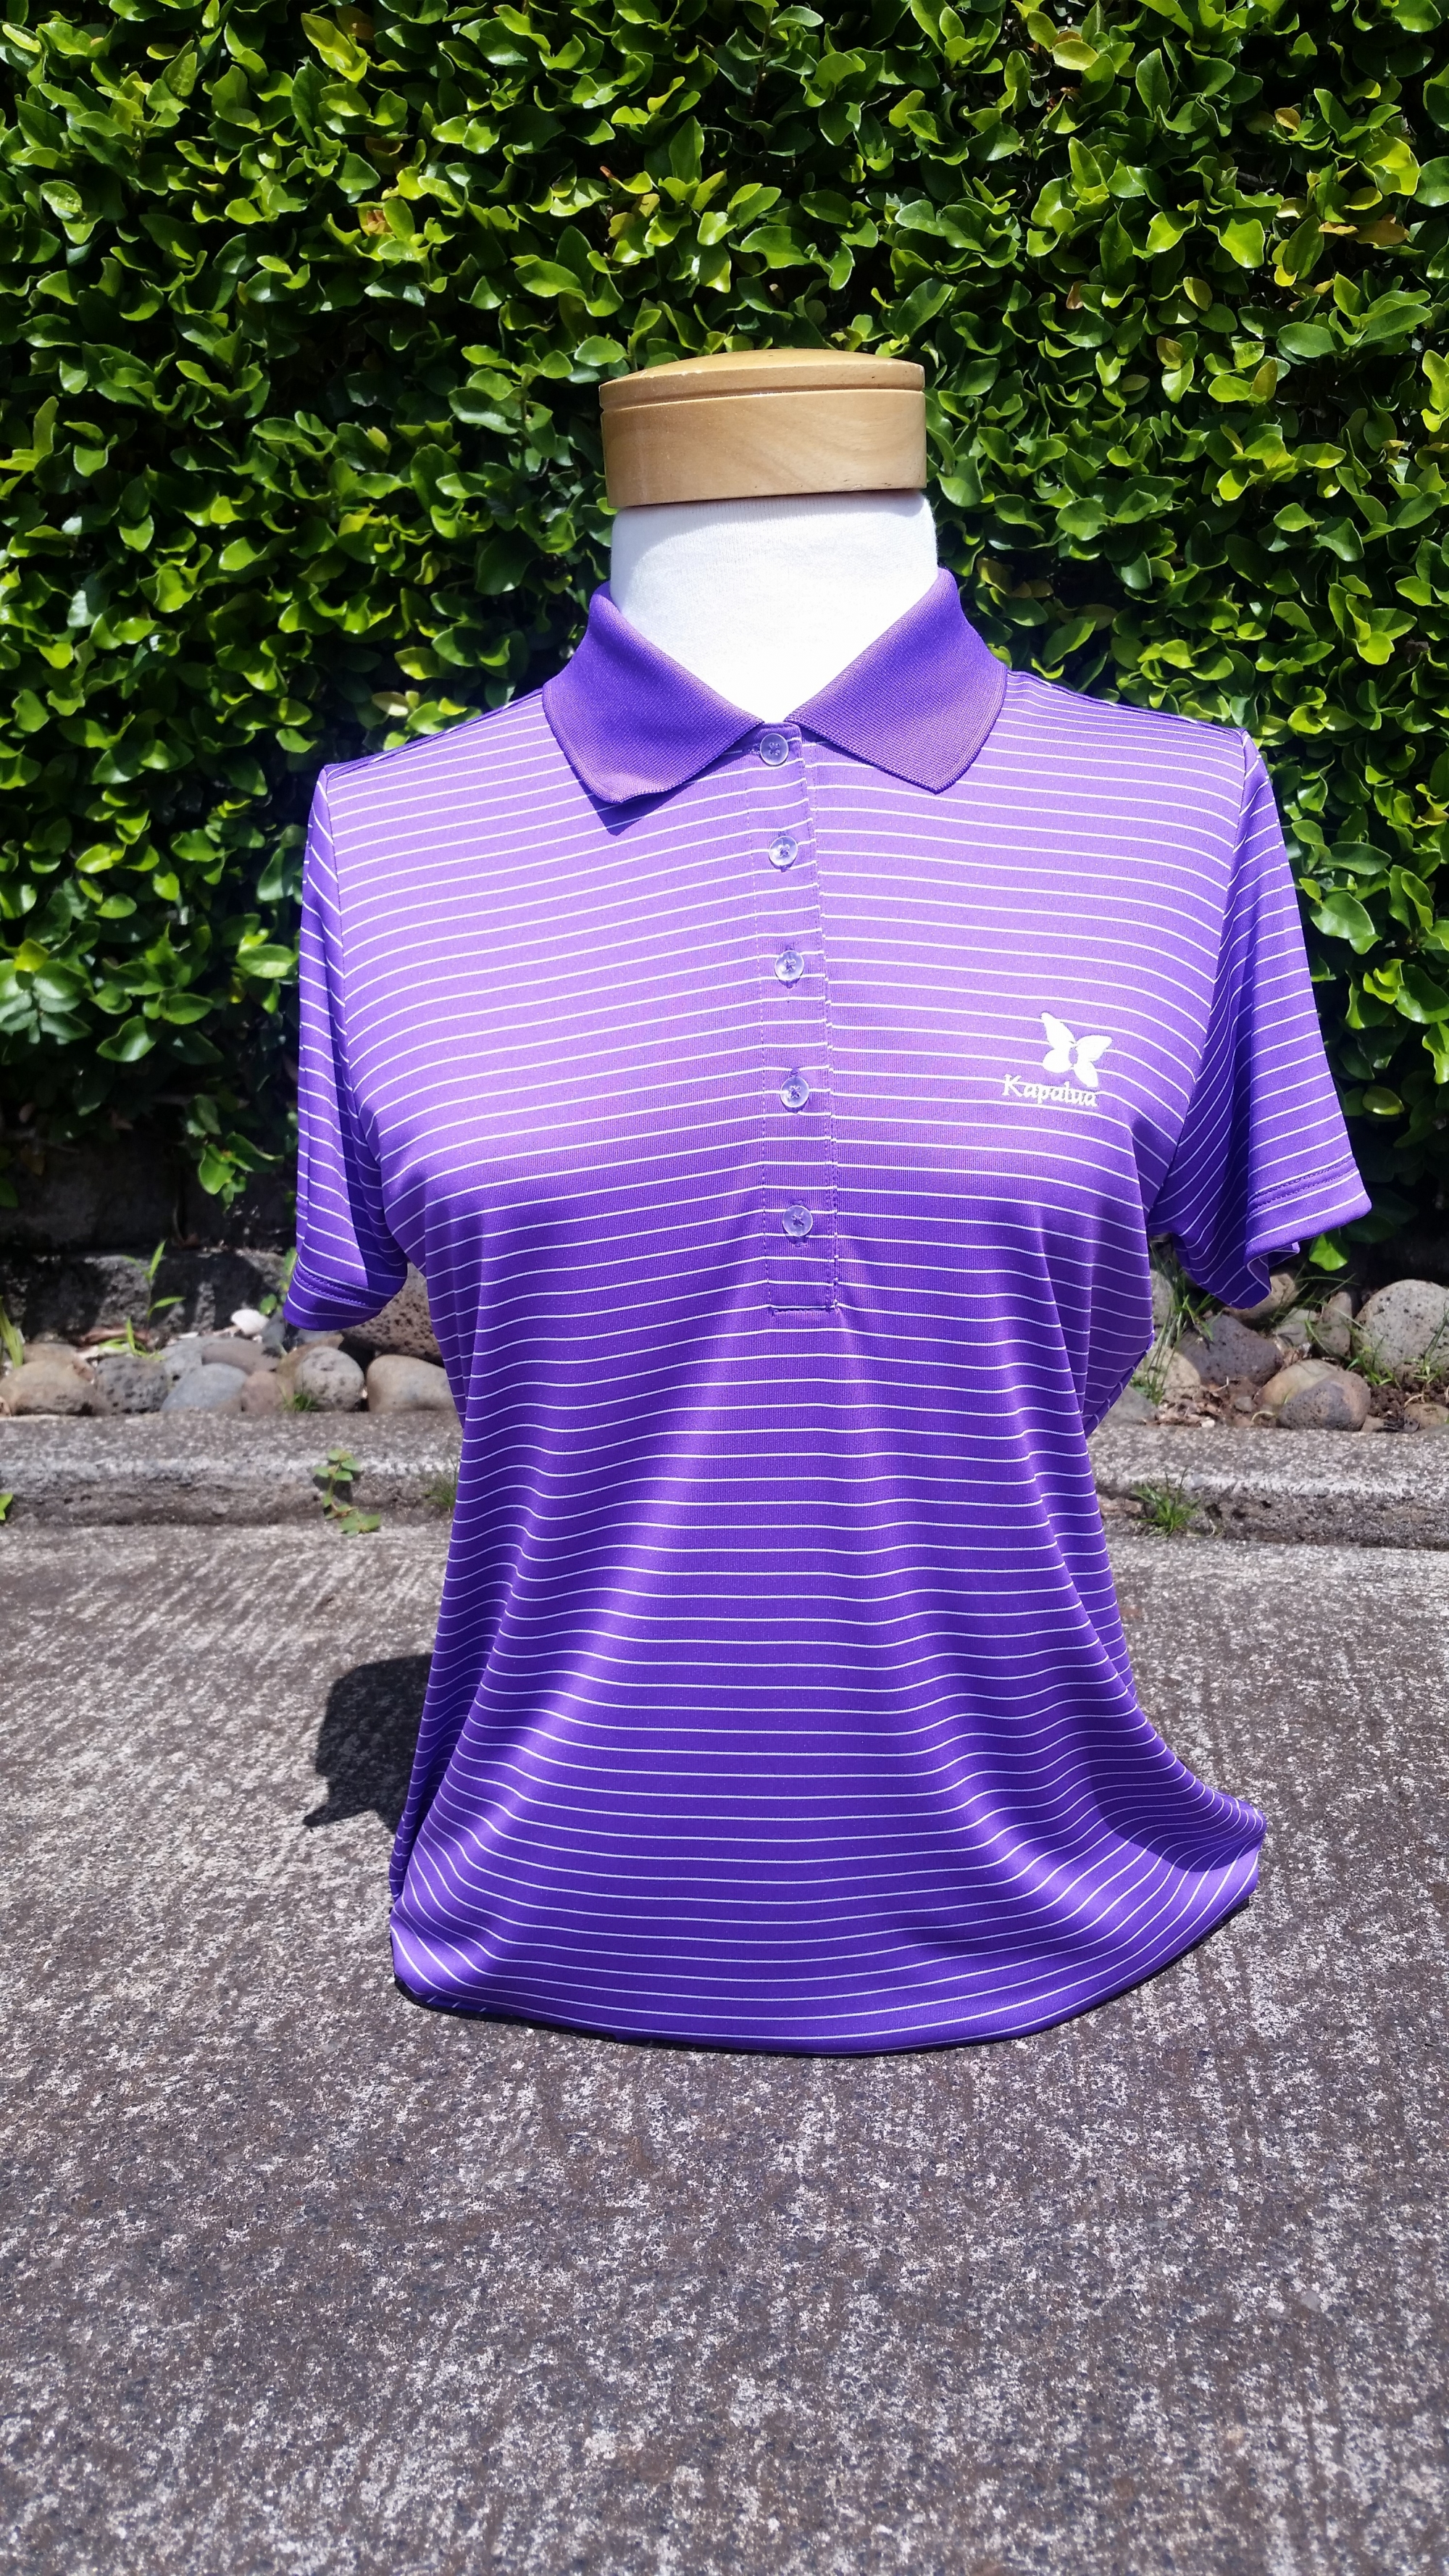 Womens Nike Purple and White Striped Polo